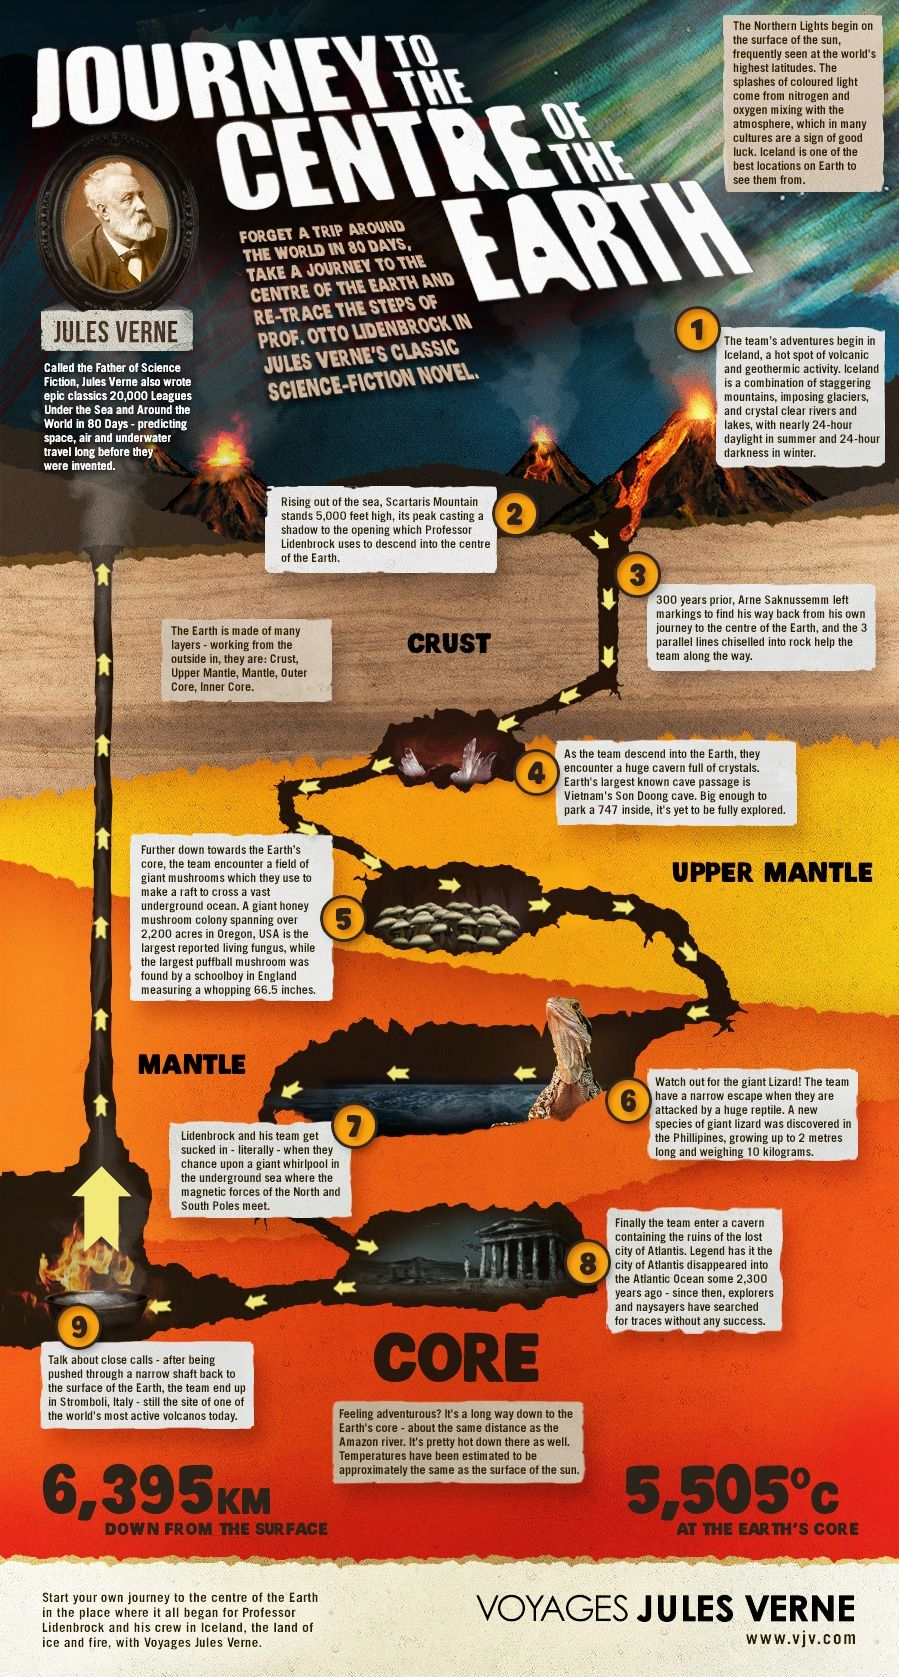 Infographic: Journey to the Centre of the Earth by Jules Verne